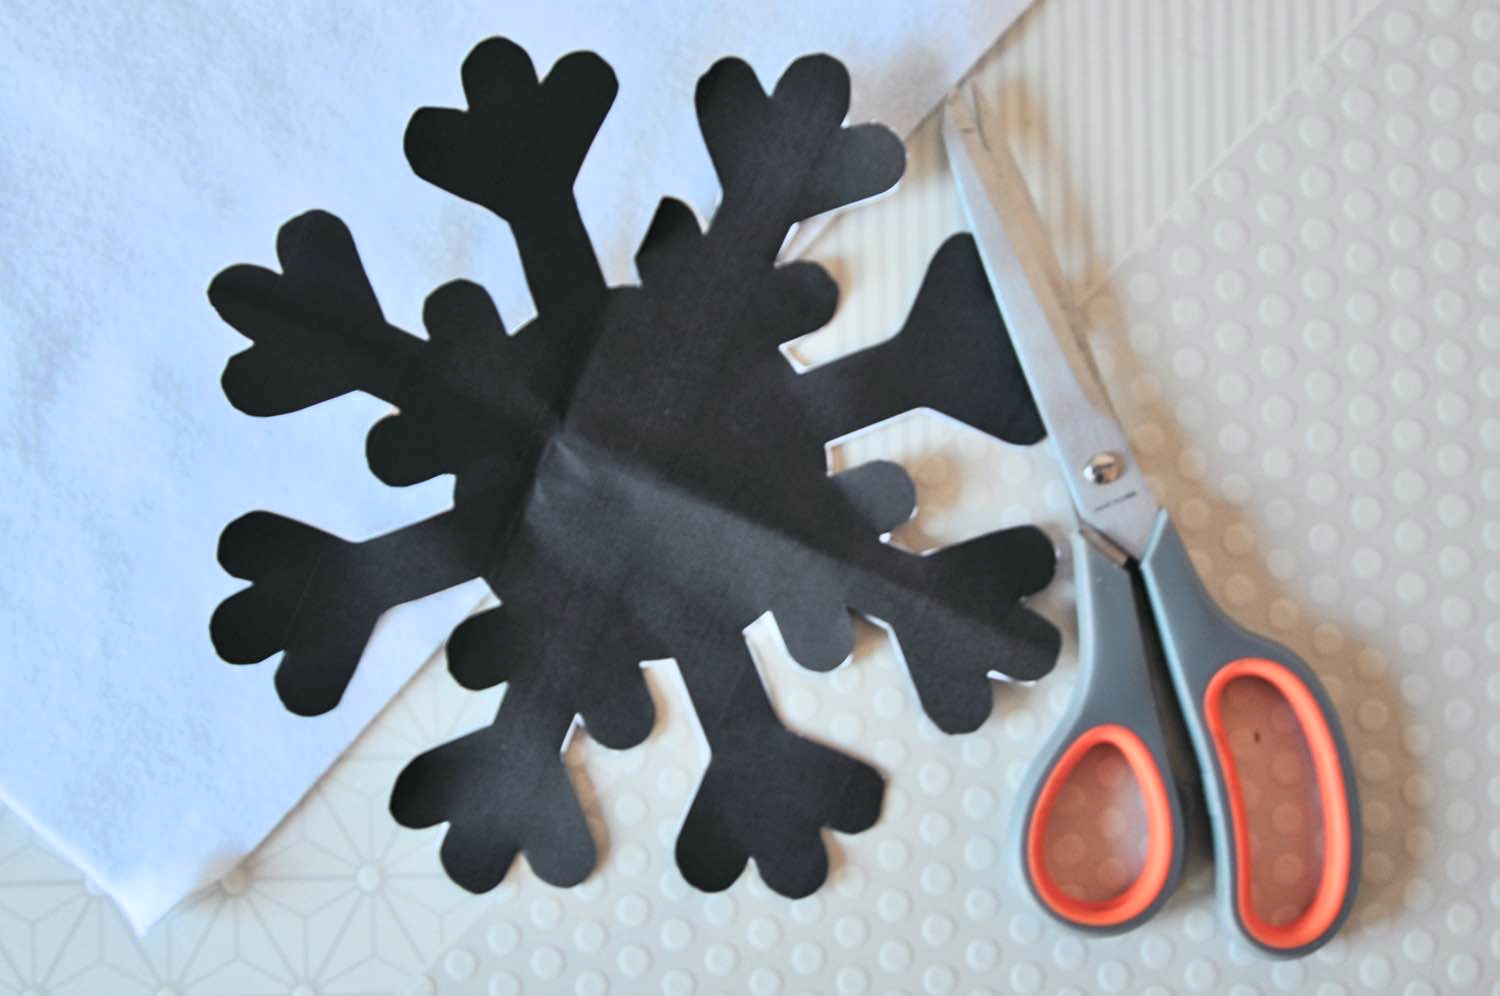 cut out the snowflake template diy pop shop america_bright